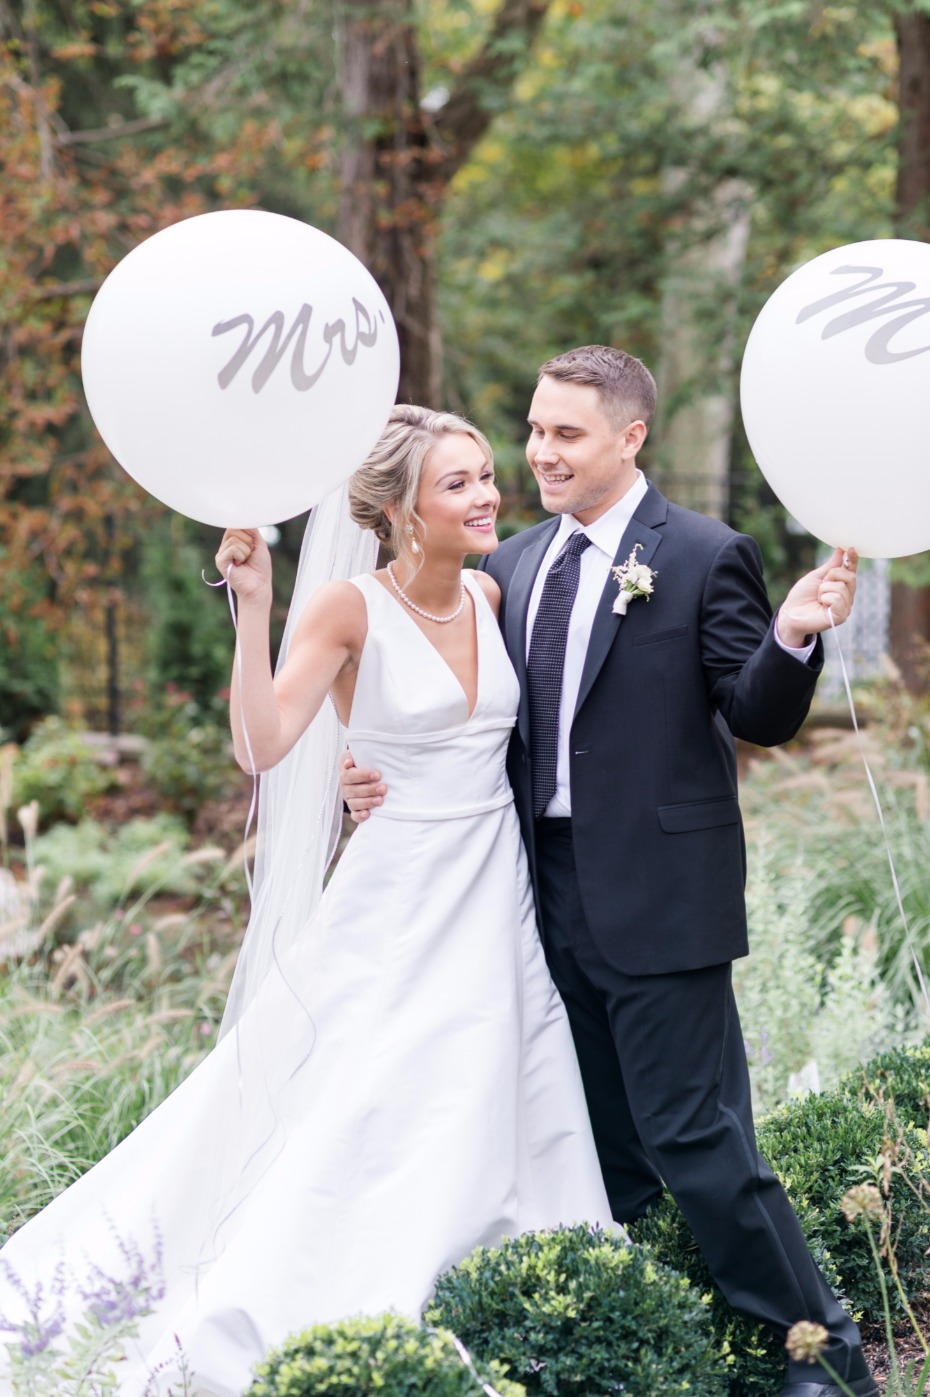 very cute bride and groom photo with mr and mrs giant balloons